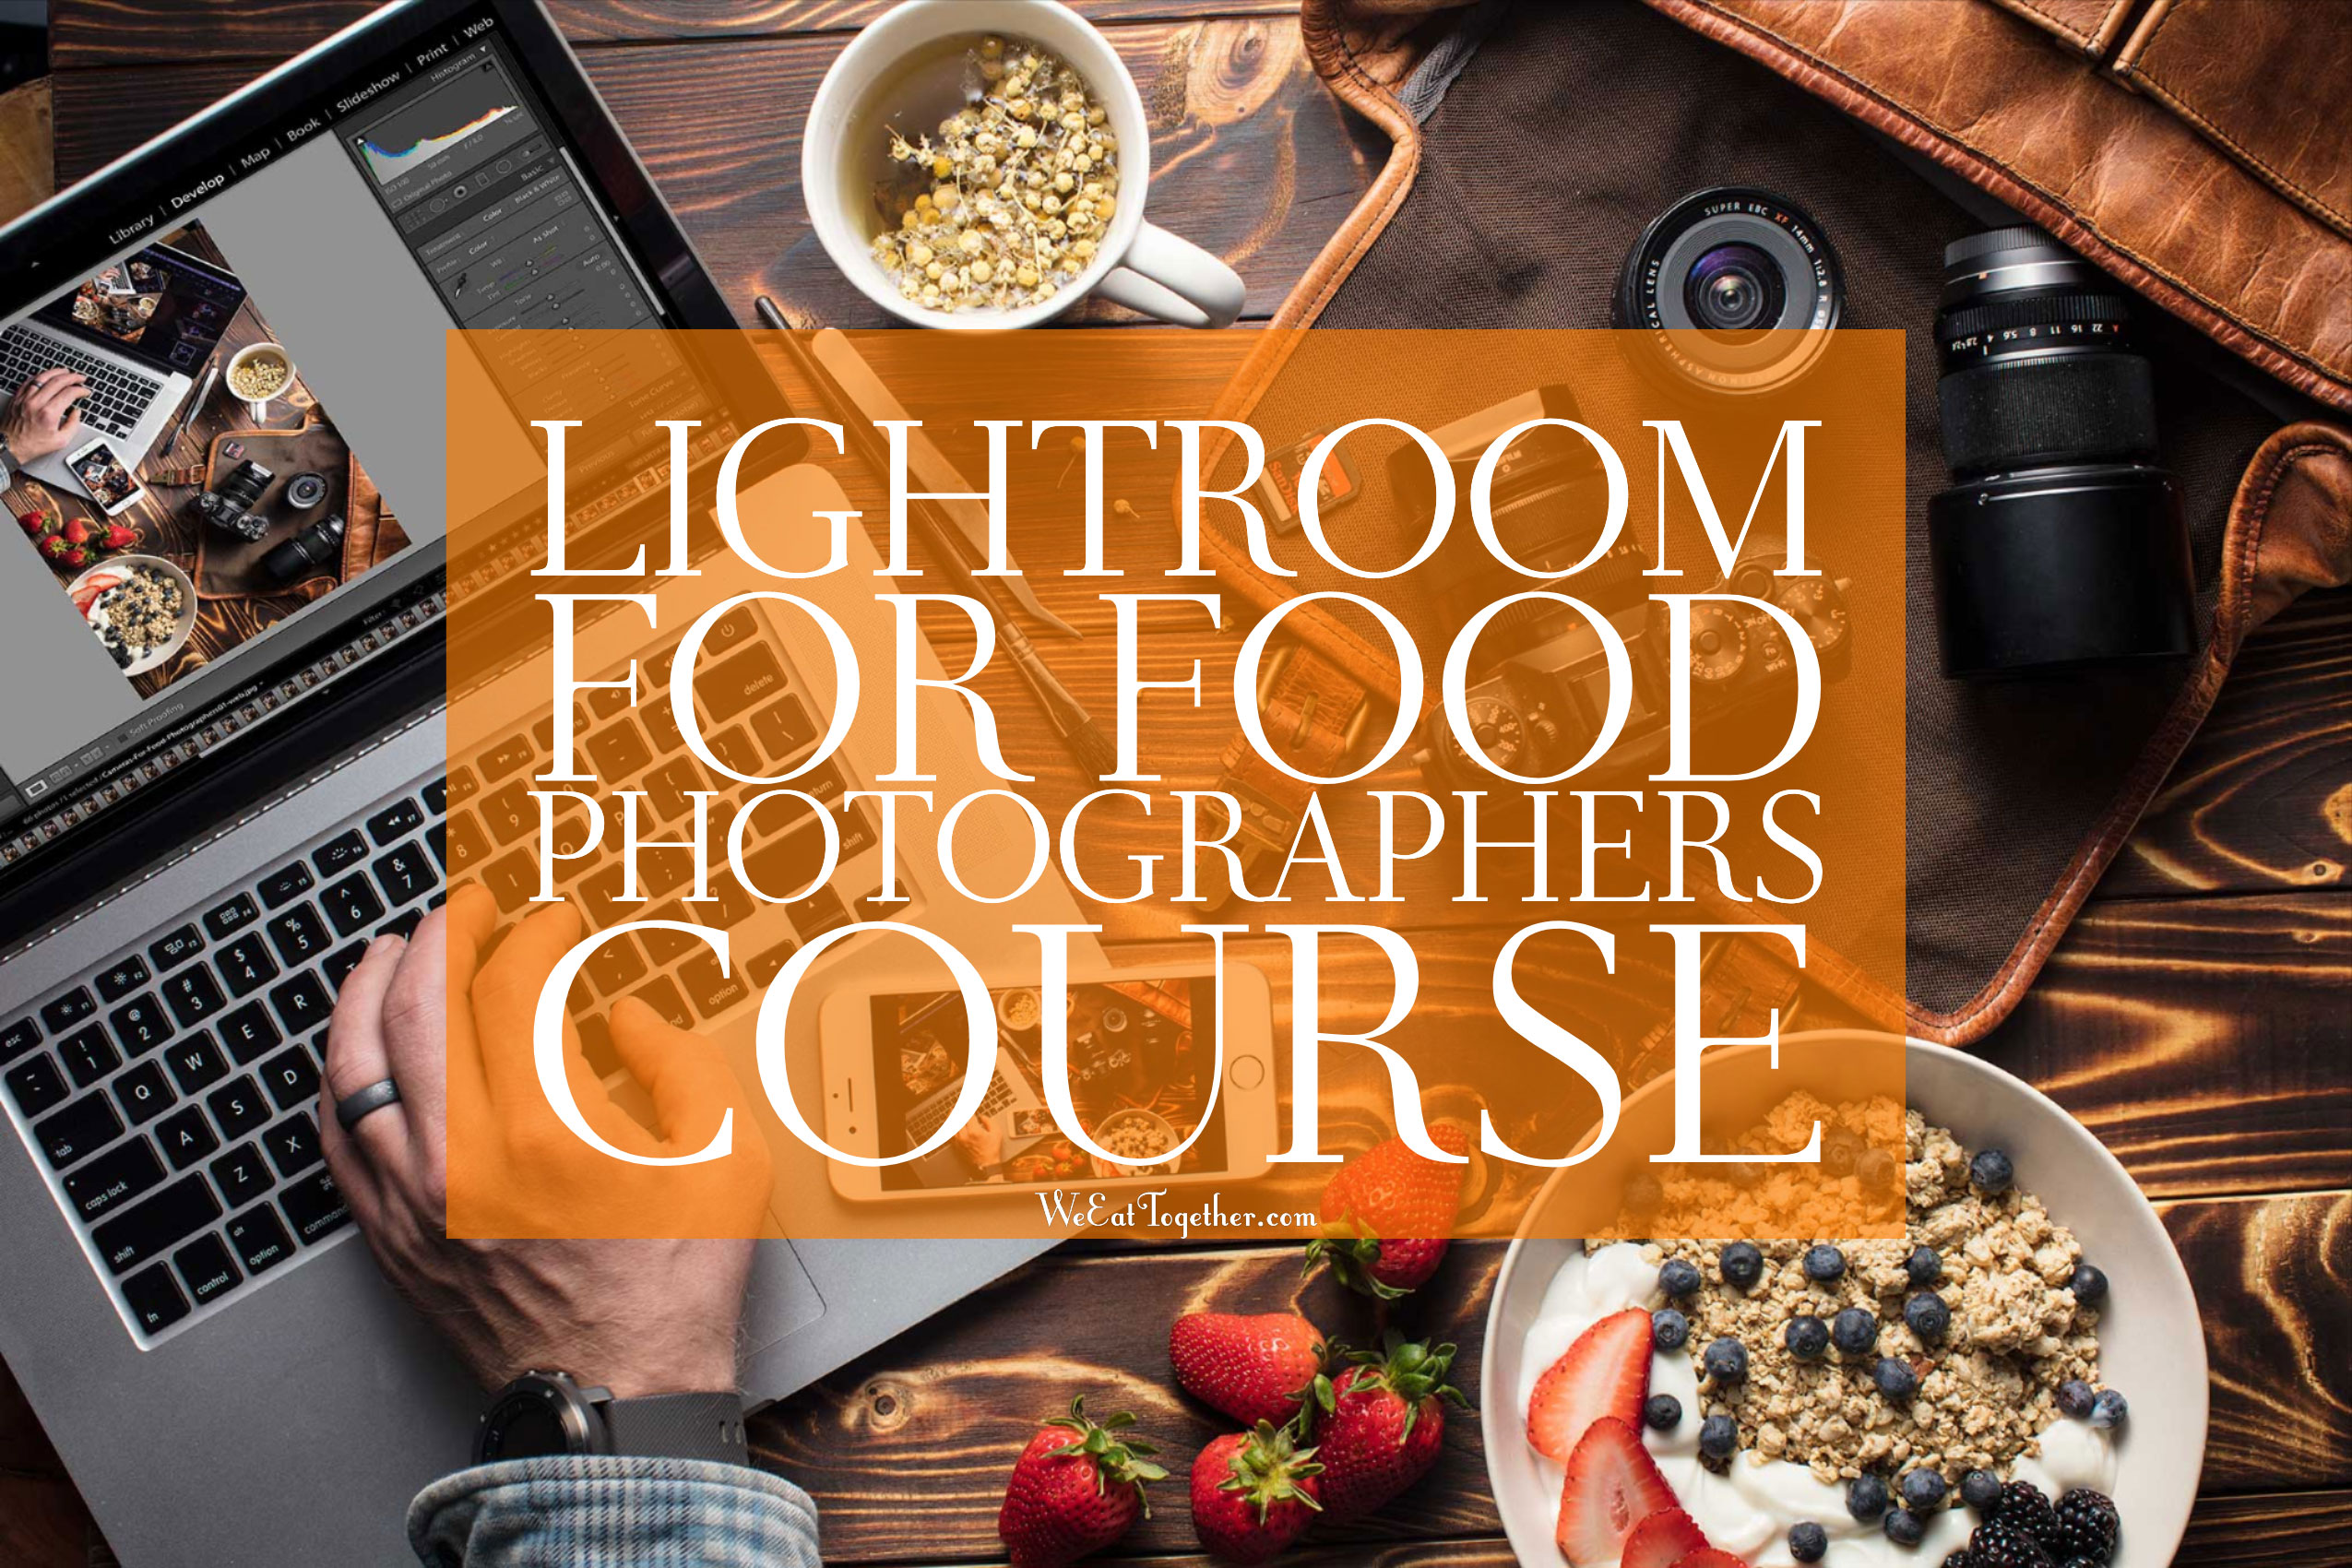 Lightroom For Food Photographers Course Bundle